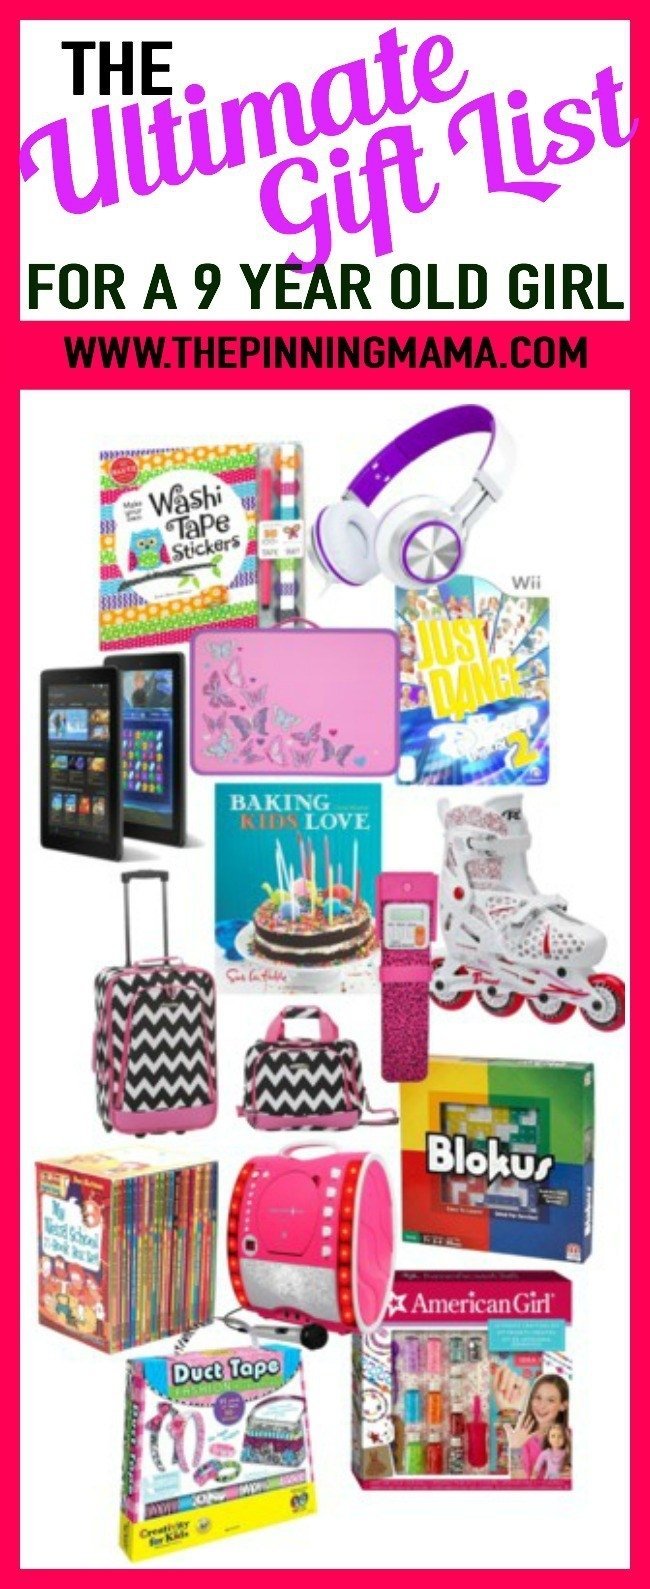 10 Spectacular Gift Ideas For 9 Yr Old Girls the ultimate gift list for a 9 year old girl top toys girls age 9 12